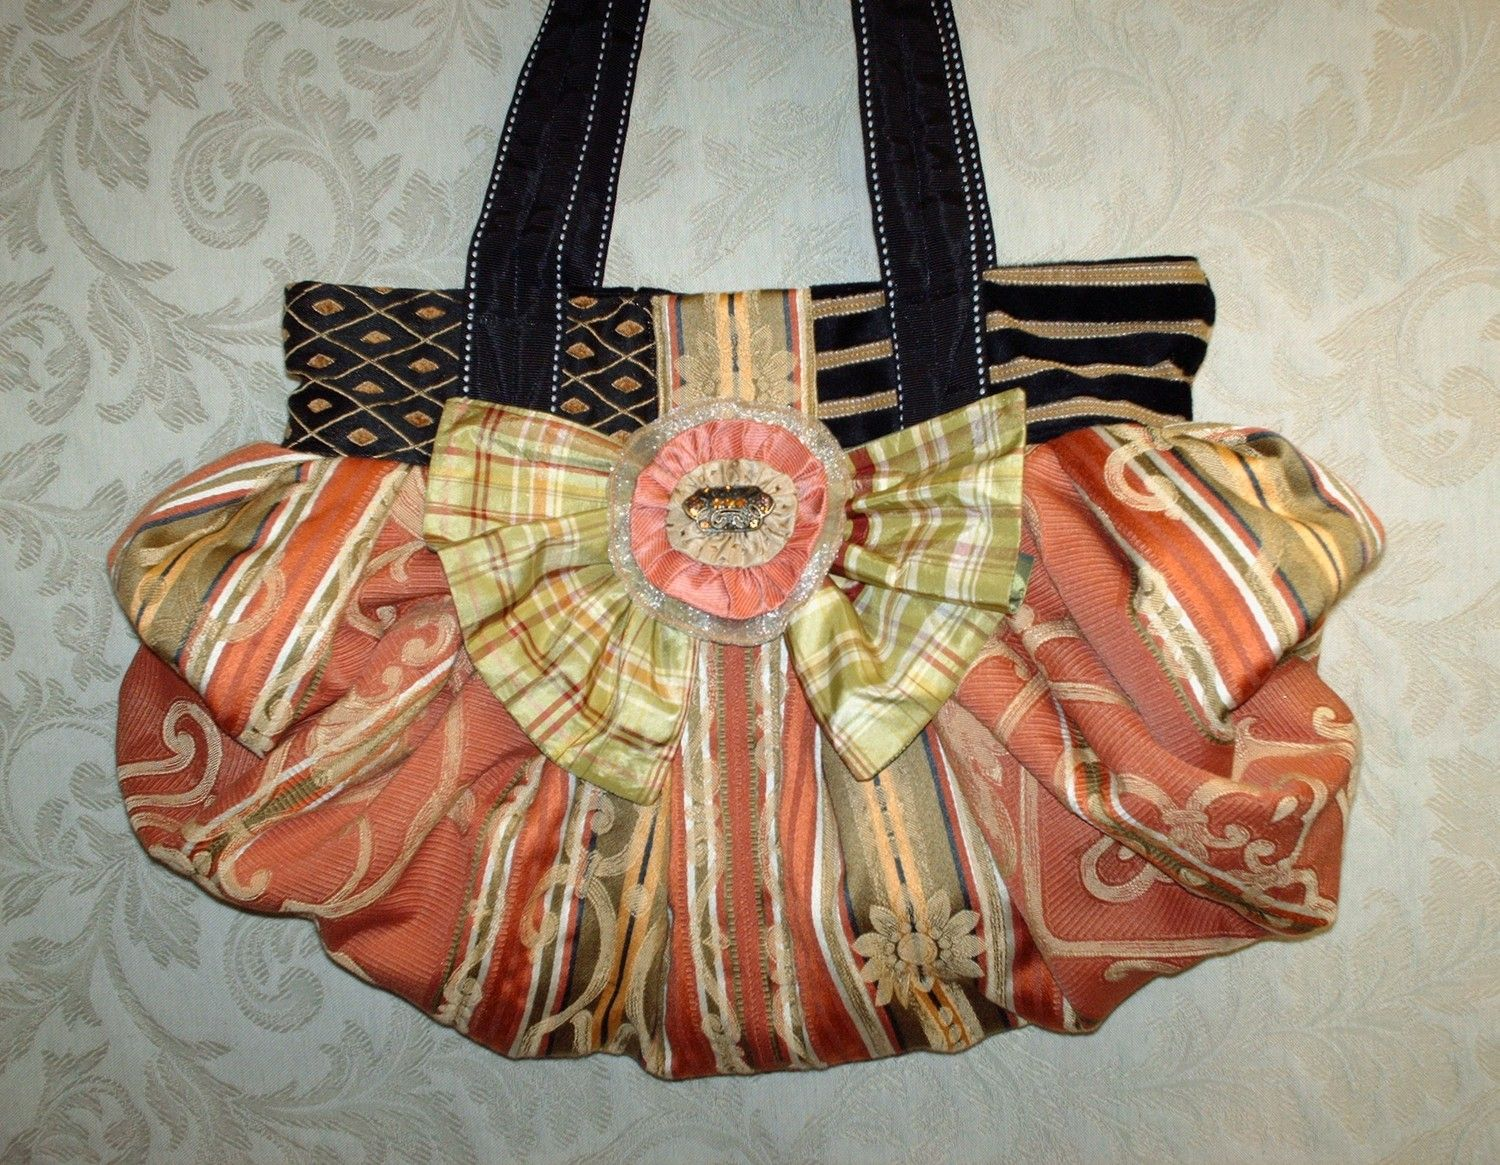 Large Boho Chic Carpet Bag In Tangerine Coral Green And Black With Silk Bow And Handcrafted Removable Brooch. $275.00, via Etsy.